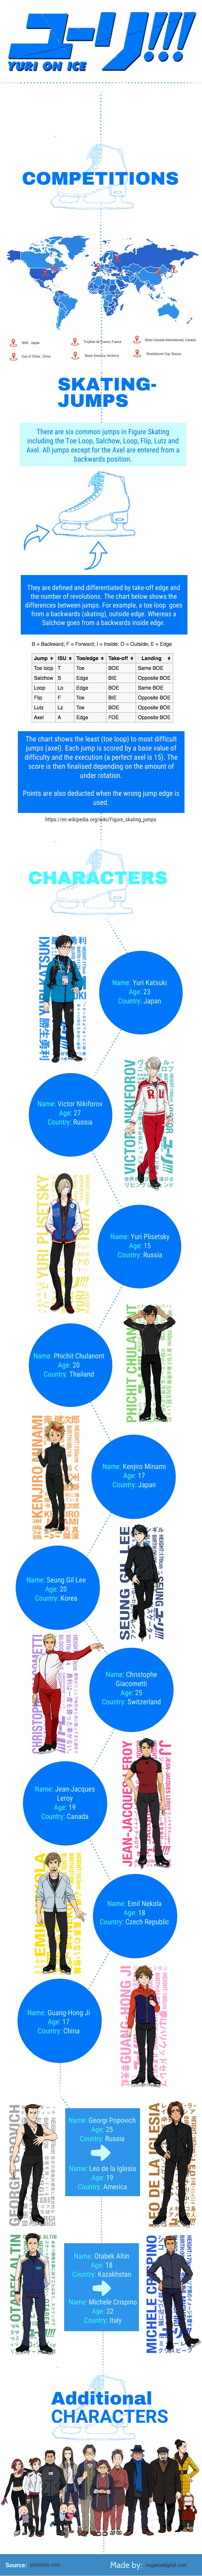 Wow, the bit on the jumps was actually really interesting!! yuri on ice, infographic, skate locations, jump types, characters